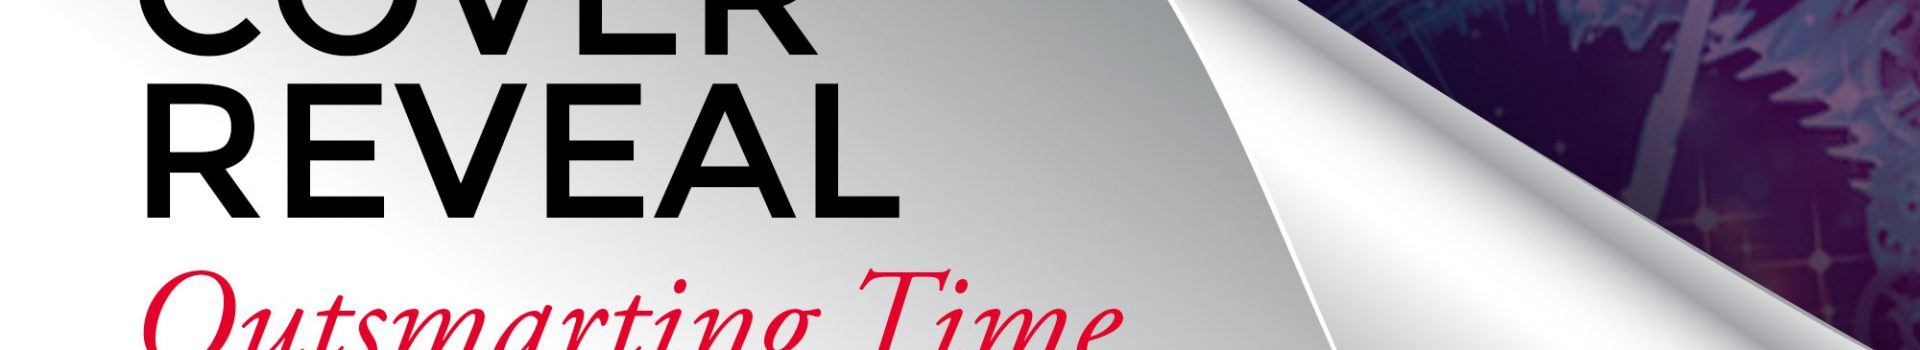 COVER REVEAL for Outsmarting Time